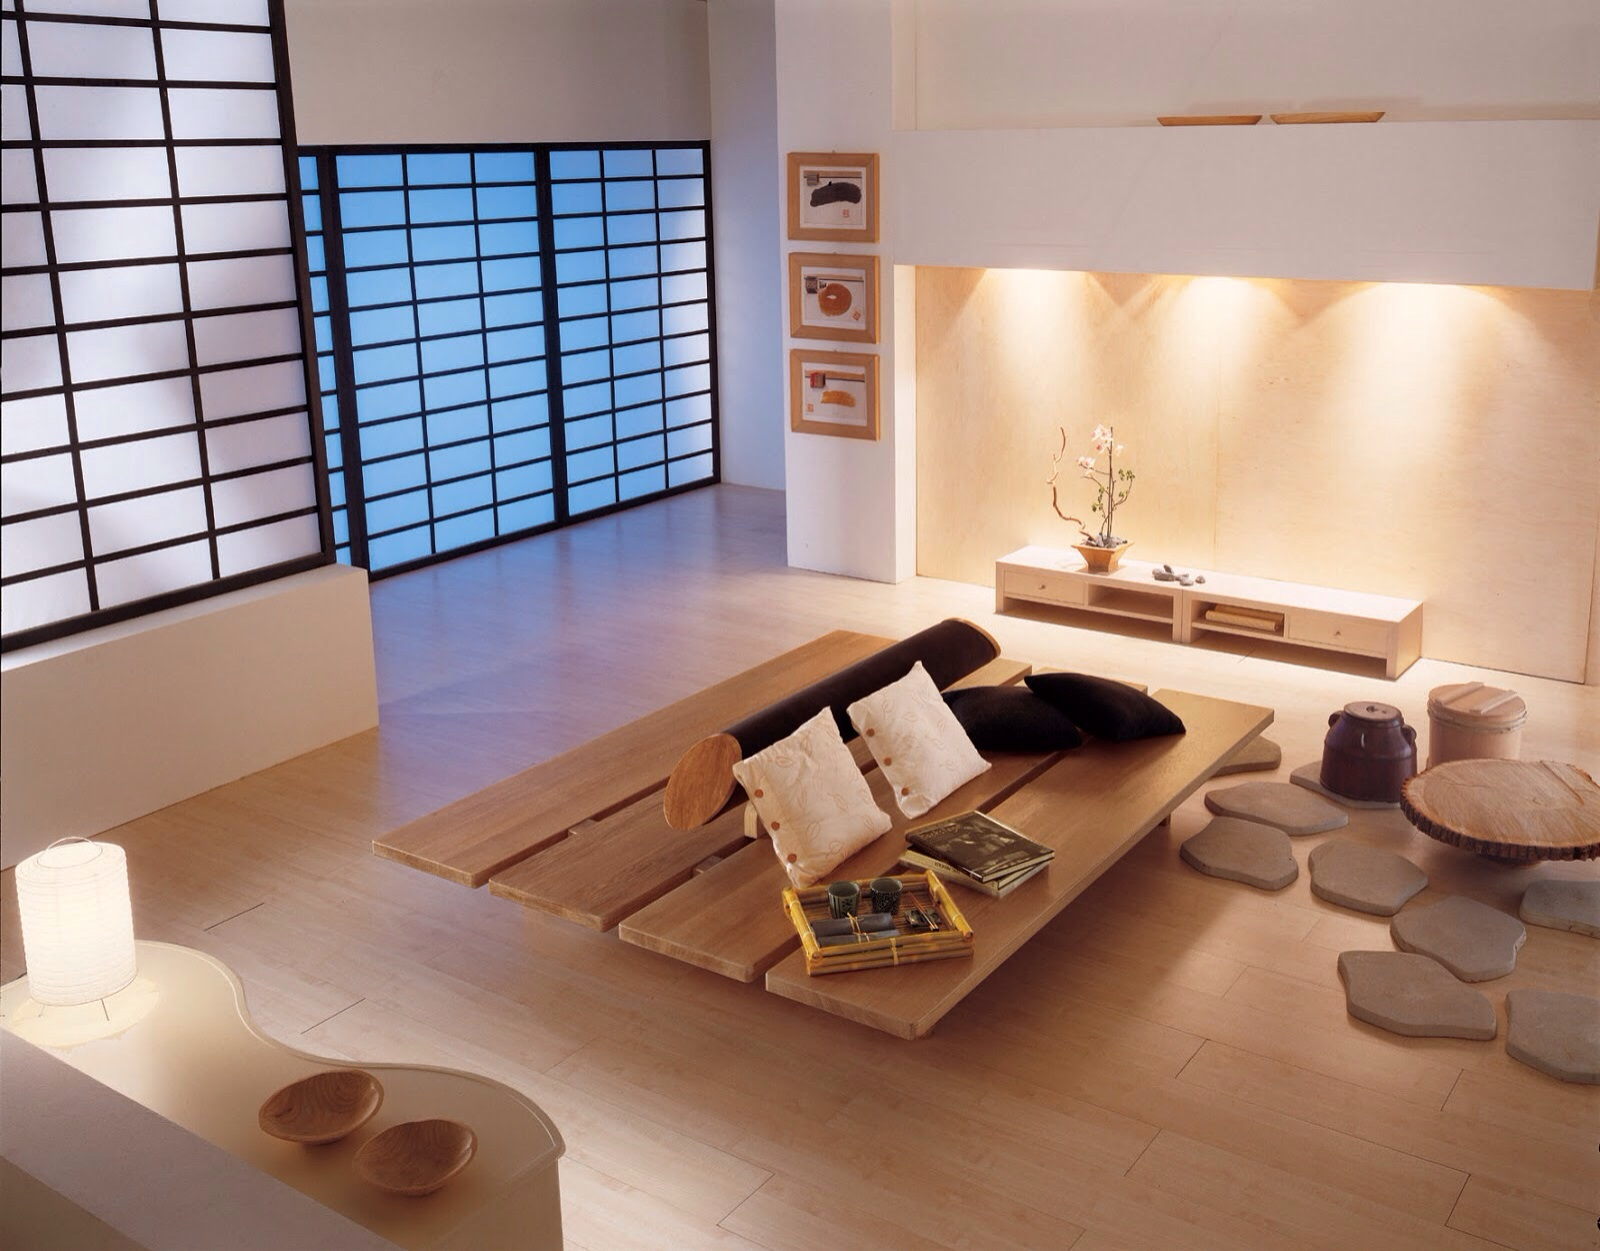 Zen Inspired Interior Design on japanese home bathroom, japanese minimalist bathroom, japanese wood bathroom, japanese red bathroom, japanese design bathroom, japanese stone bathroom, japanese spa bathroom, japanese themed bathroom, japanese bathroom sink, japanese modern bathroom, japanese garden bathroom,